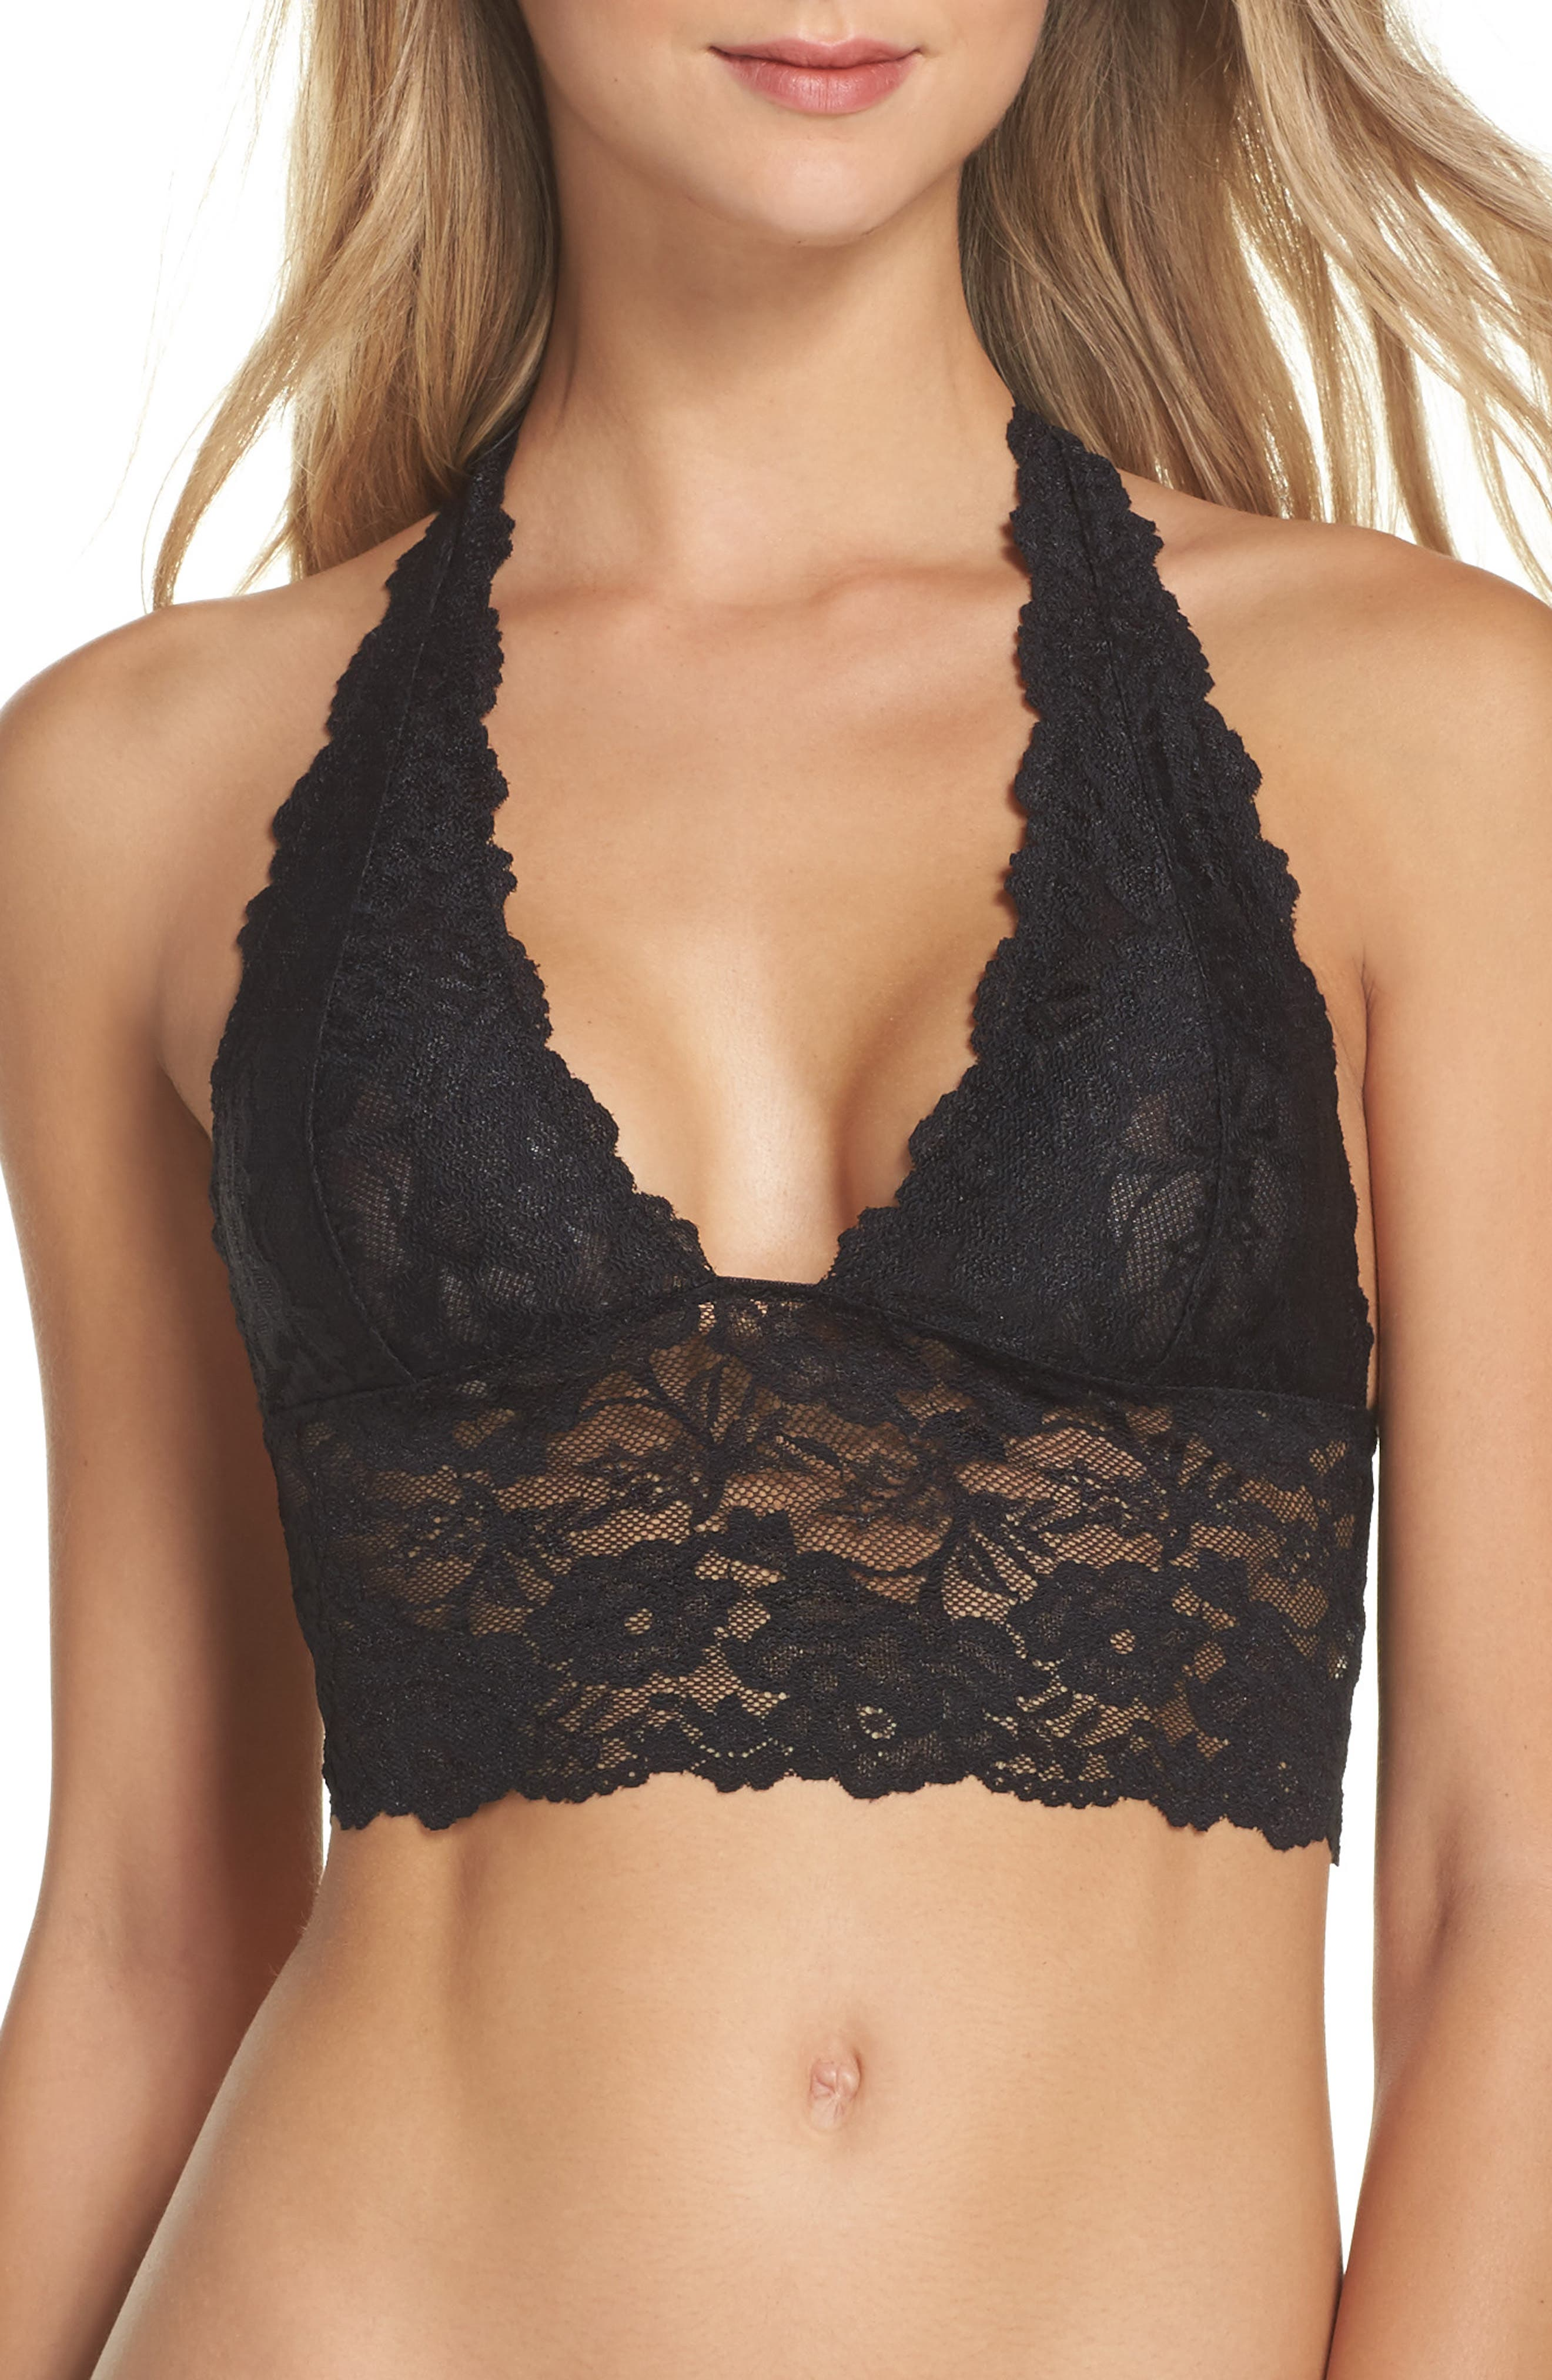 Intimately FP Heartbreaker Longline Bralette,                             Main thumbnail 1, color,                             010